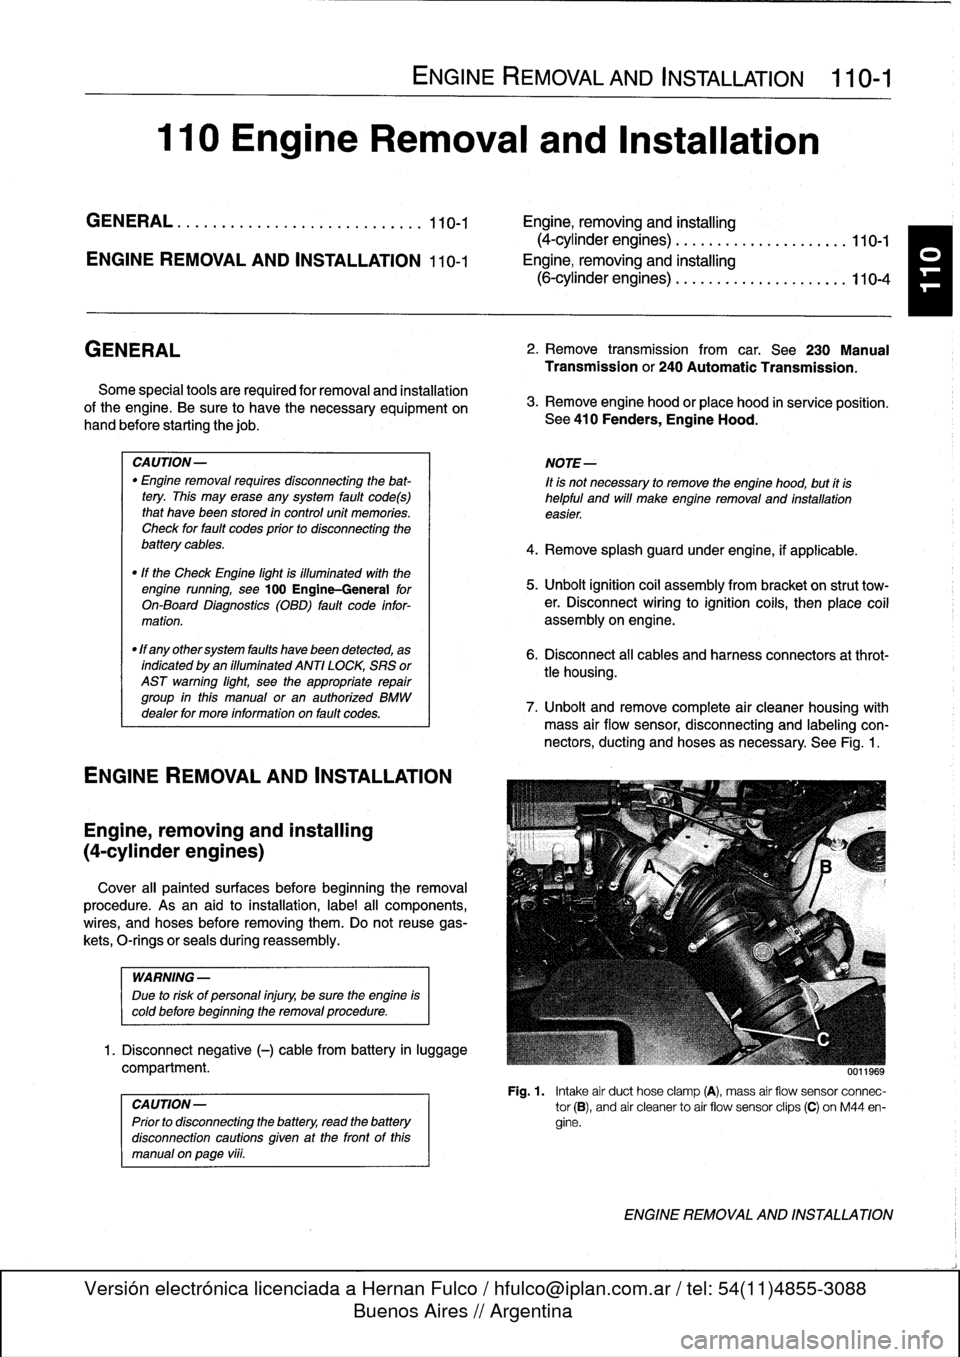 Bmw 325i 1992 E36 Workshop Manual Wiring Harness Removal Page 59 110 Engine